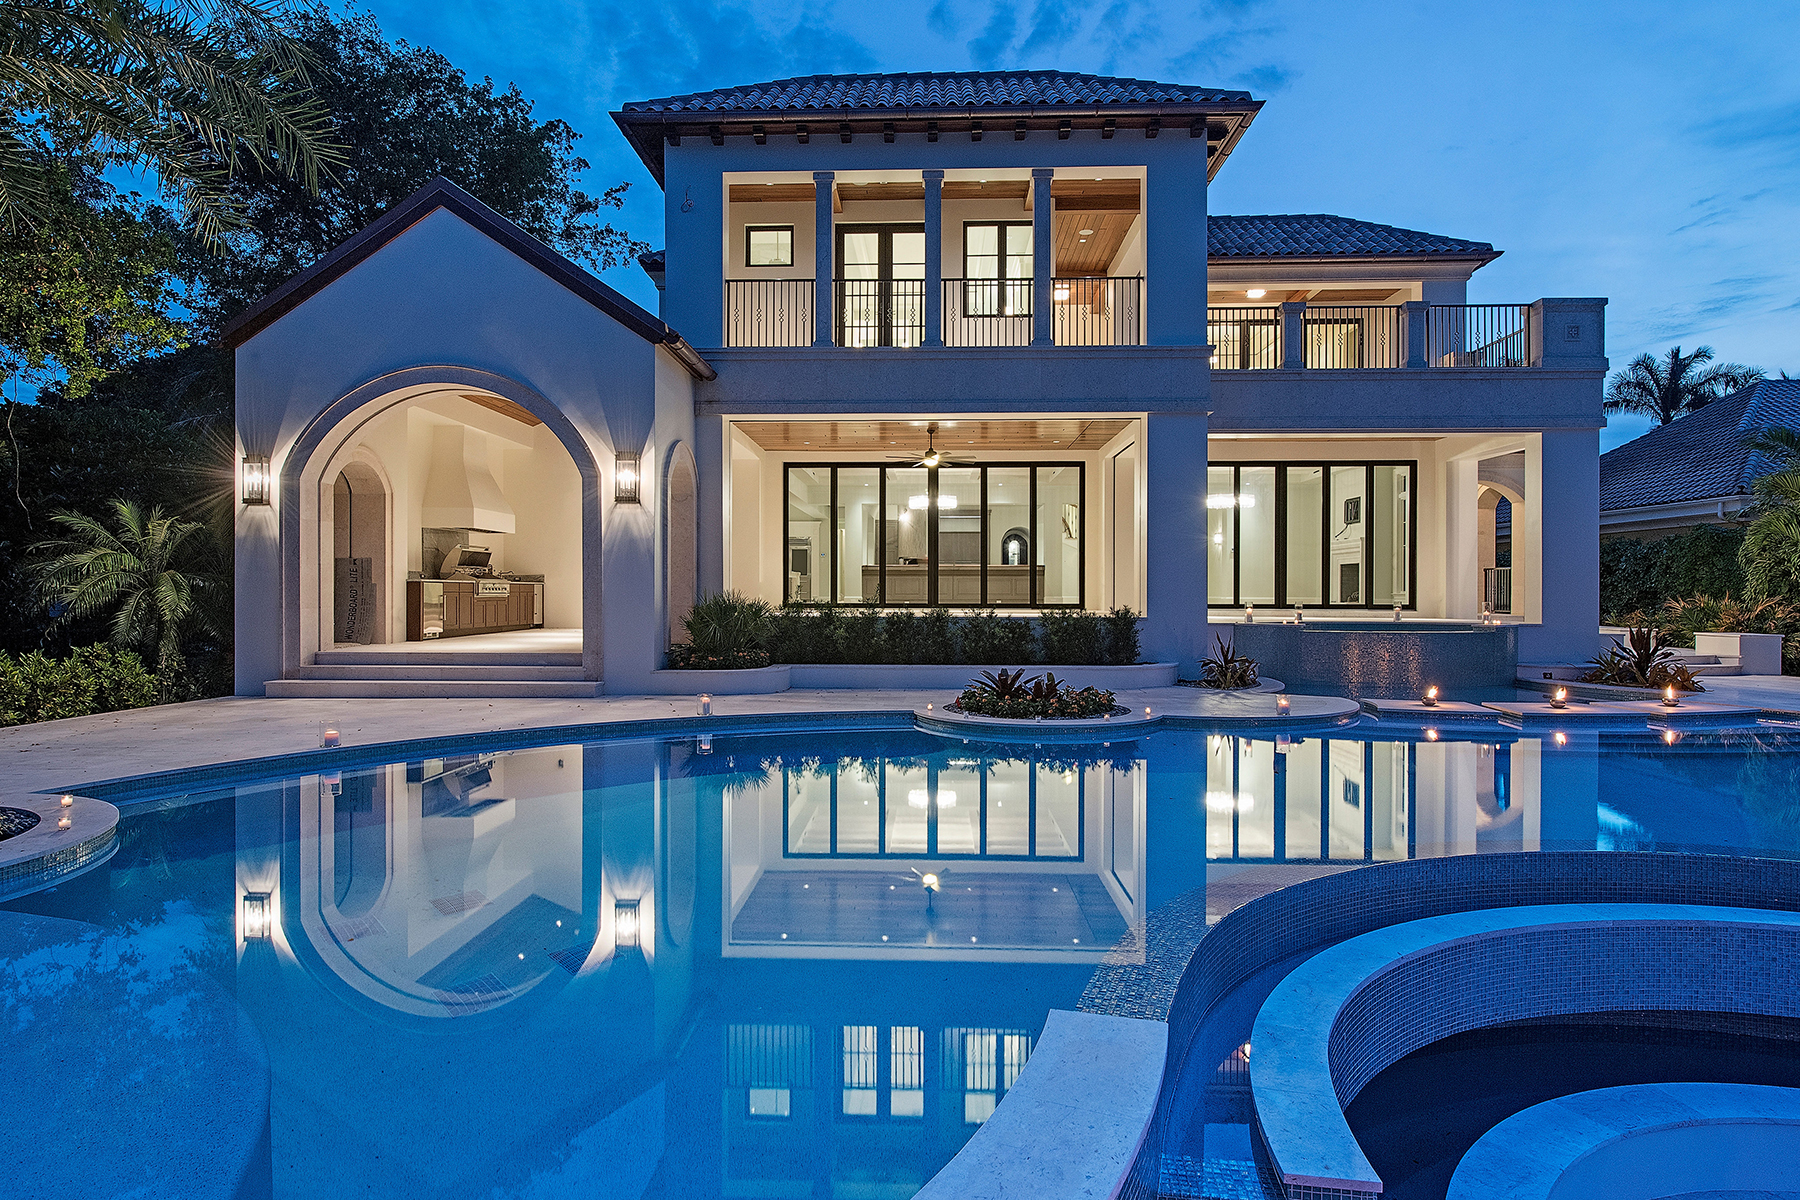 Villa per Vendita alle ore PORT ROYAL - PORT ROYAL CUTLASS COVE 4233 Gordon Dr Naples, Florida, 34102 Stati Uniti